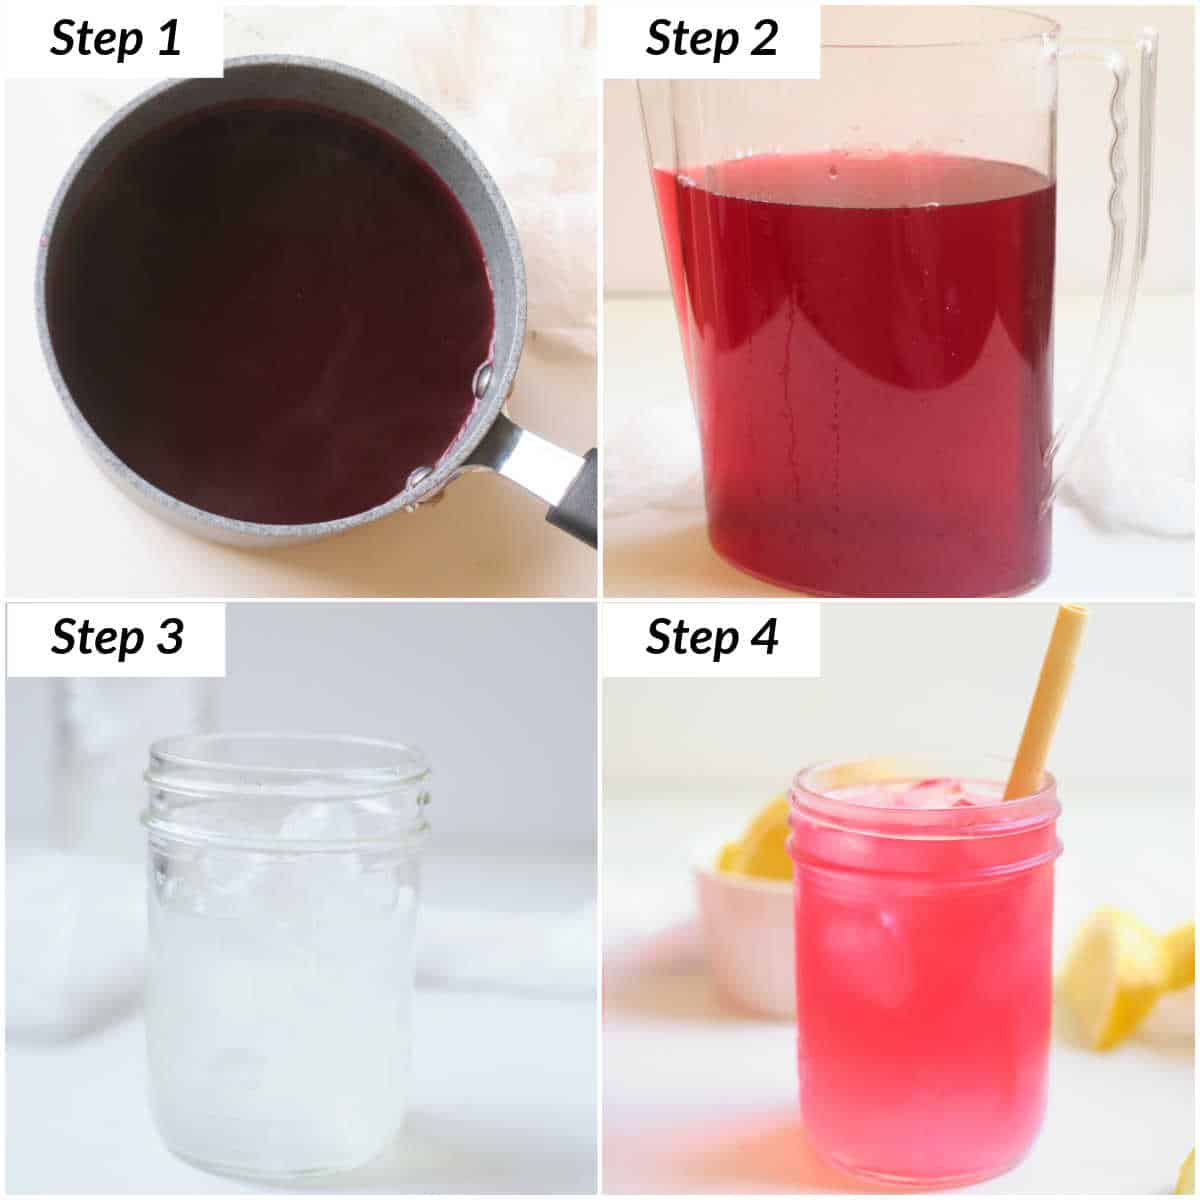 image collage showing the steps for making a passion tea lemonade refresher